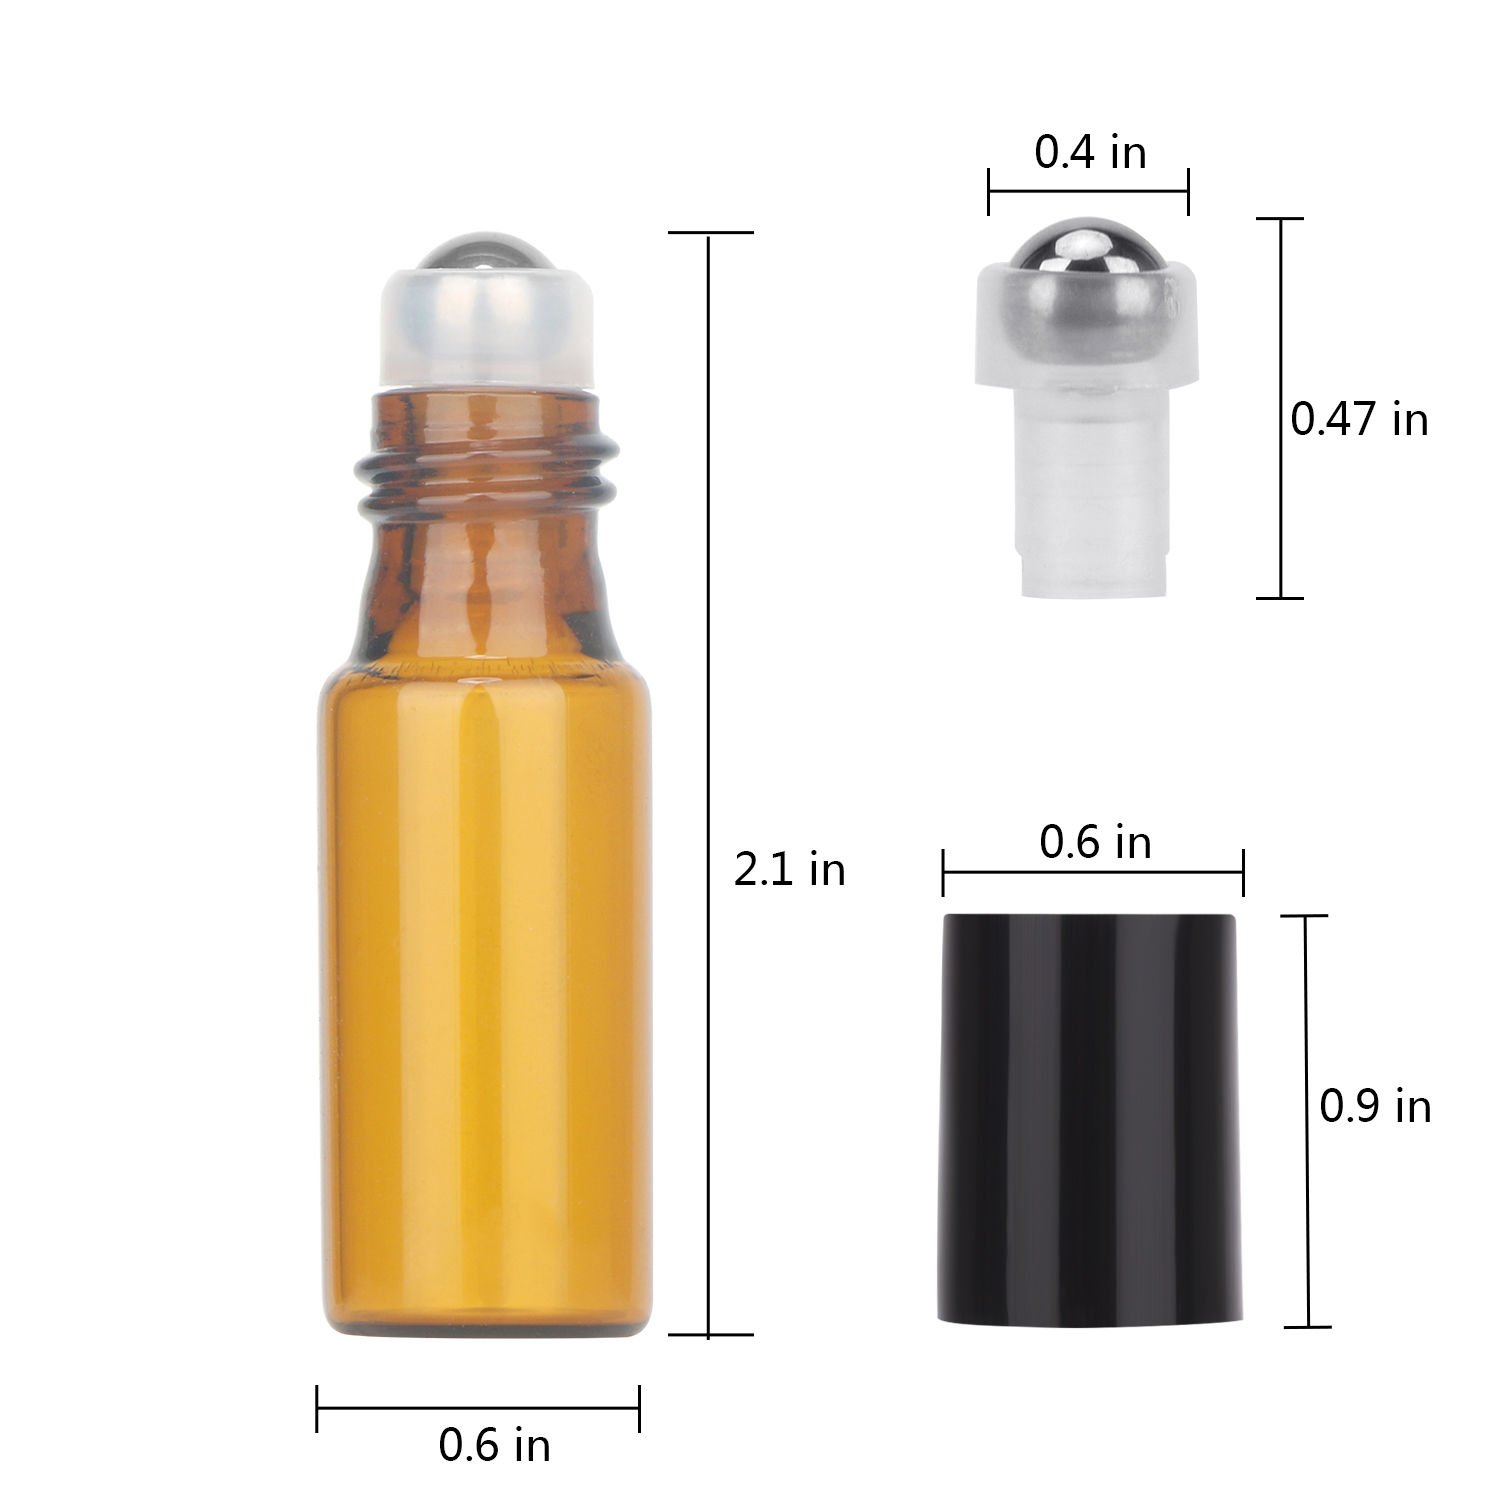 Essential Oil Roller Bottles, 24 Pack Amber Glass Roller Bottles 5ml, Roller Balls for Essential Oils, Roll on Bottles by Easytle (96 Pieces Labels, 4 Funnels, 4 Dropper, 2 Opener) by Easytle (Image #4)